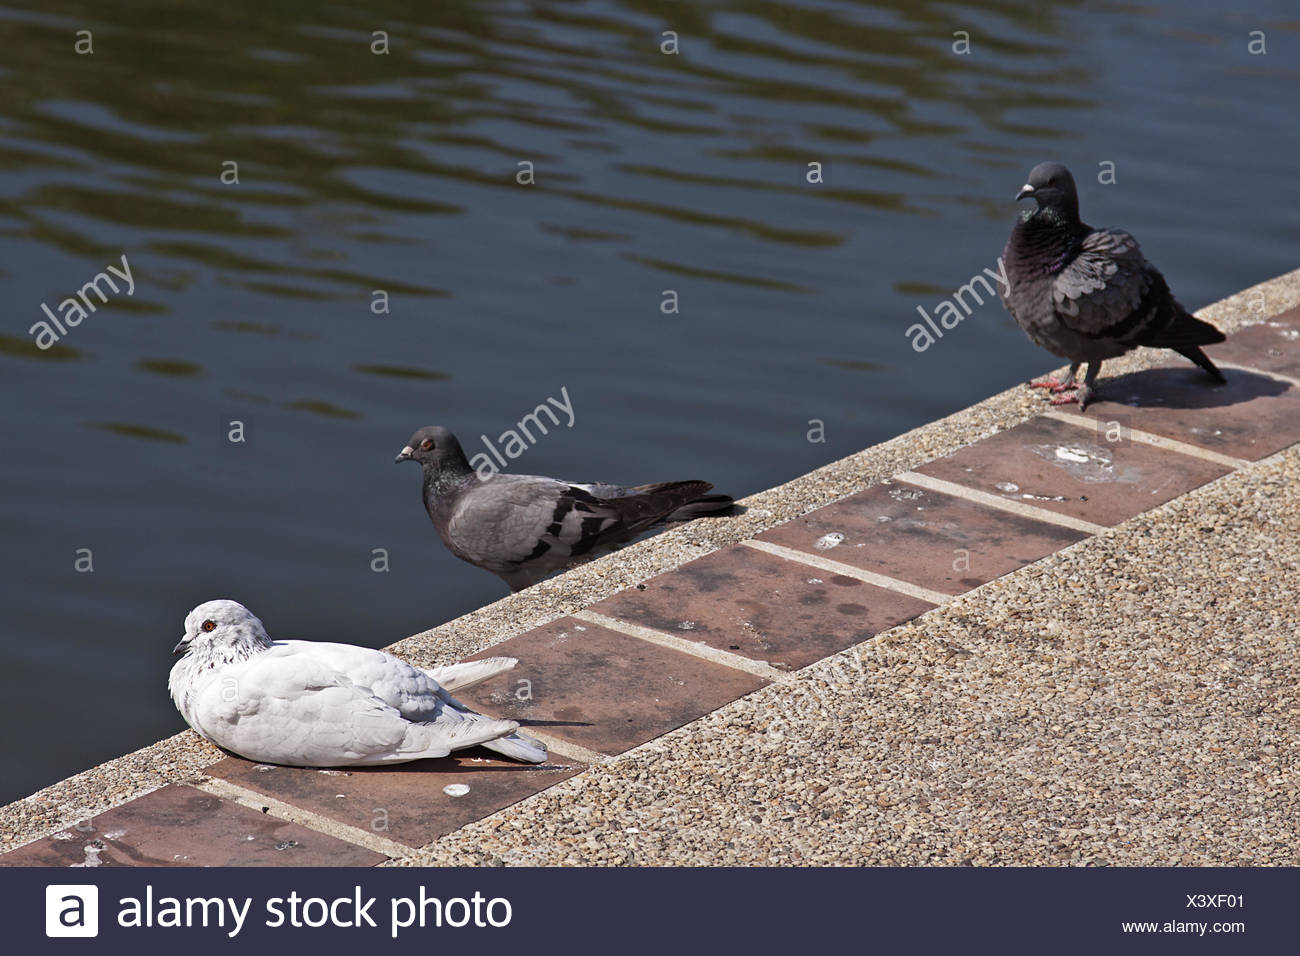 Pigeon droppings Stock Photo